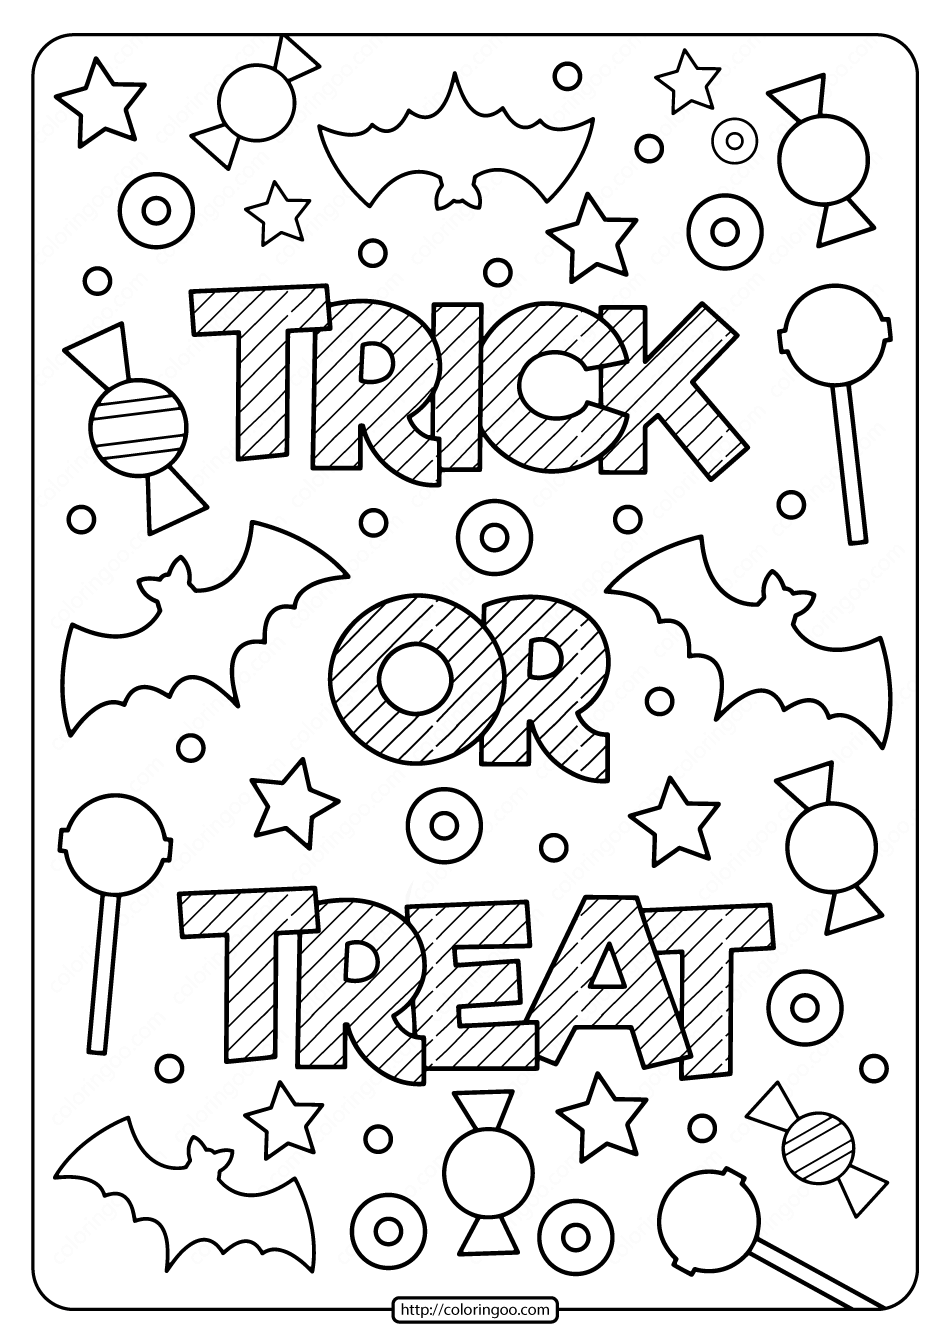 Printable Trick Or Treat Coloring Pages Coloring Pages Cute Coloring Pages Procreate Ipad Art